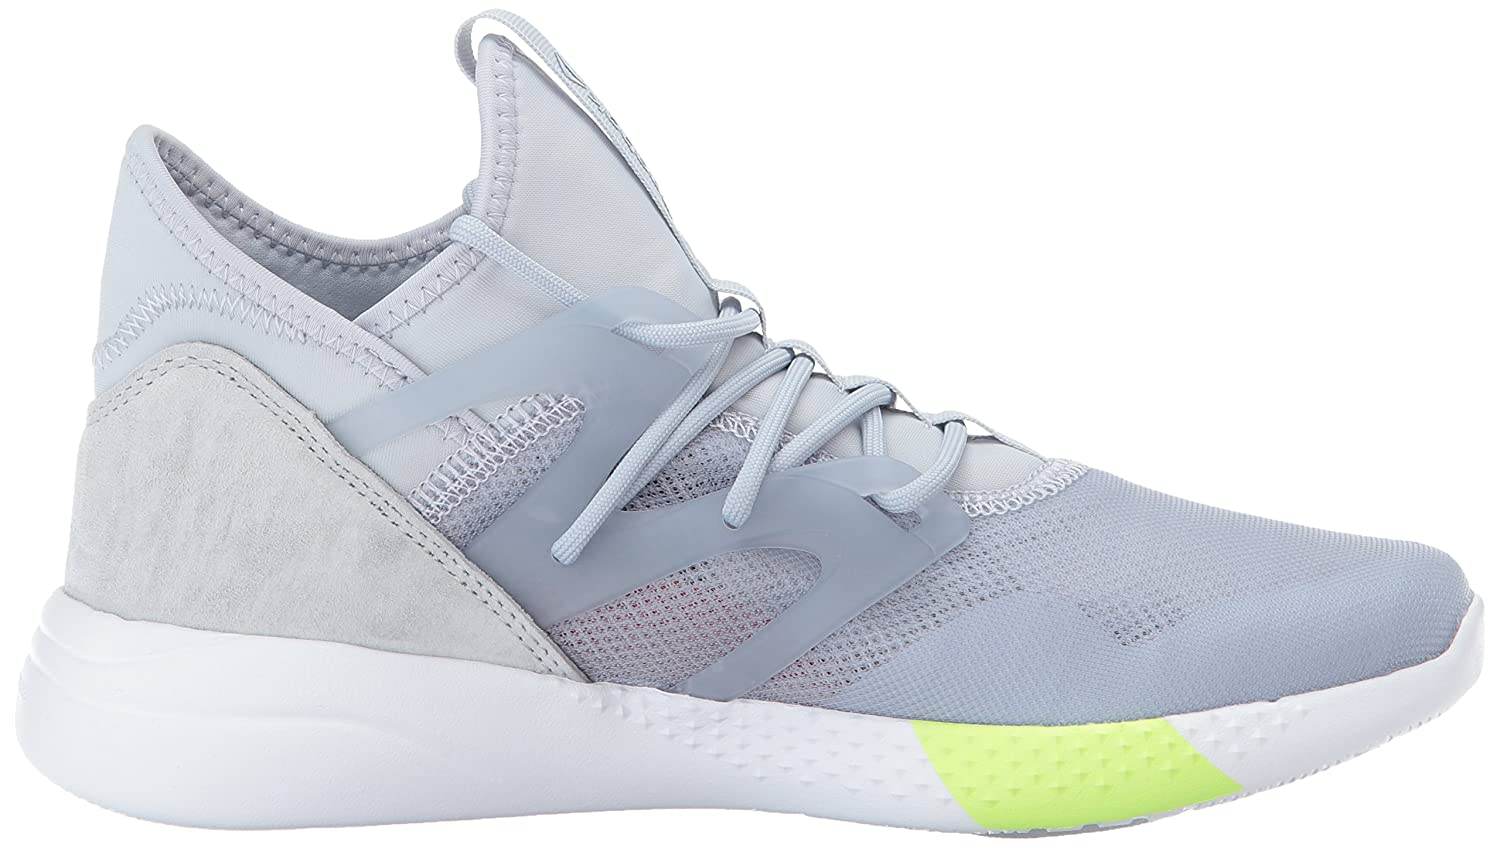 Reebok Women's Hayasu Training Shoe B01NH3ADUS 8 Metallic/White/Electric B(M) US|Cloud Grey/Meteor Grey/Silver Metallic/White/Electric 8 Flash dedd3c